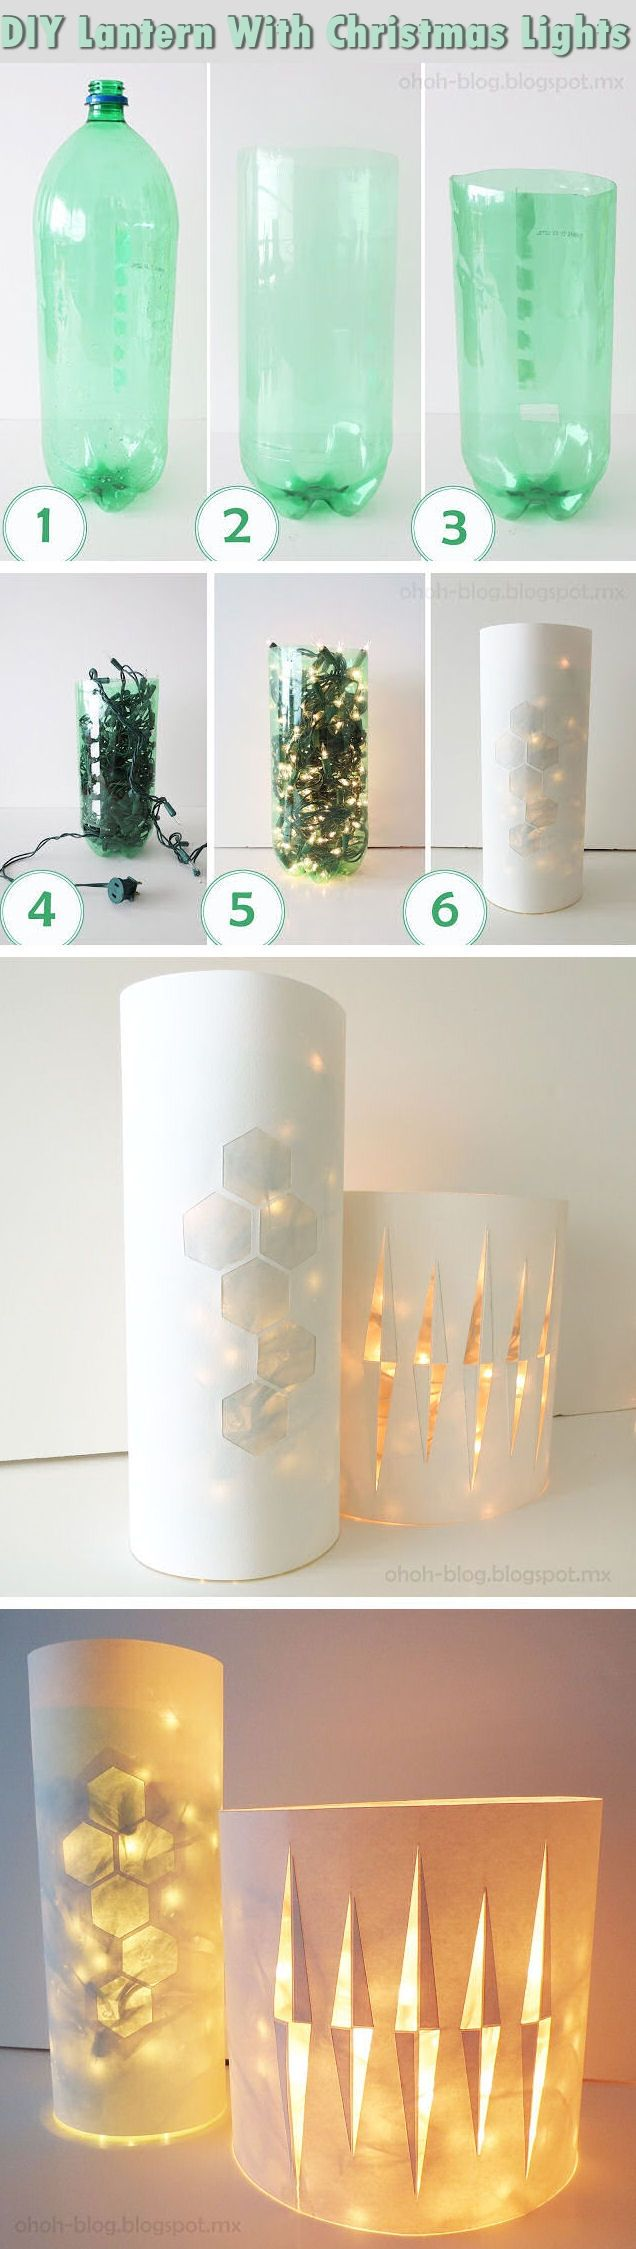 Diy lantern with christmas lights pictures photos and for Home decor using plastic bottles